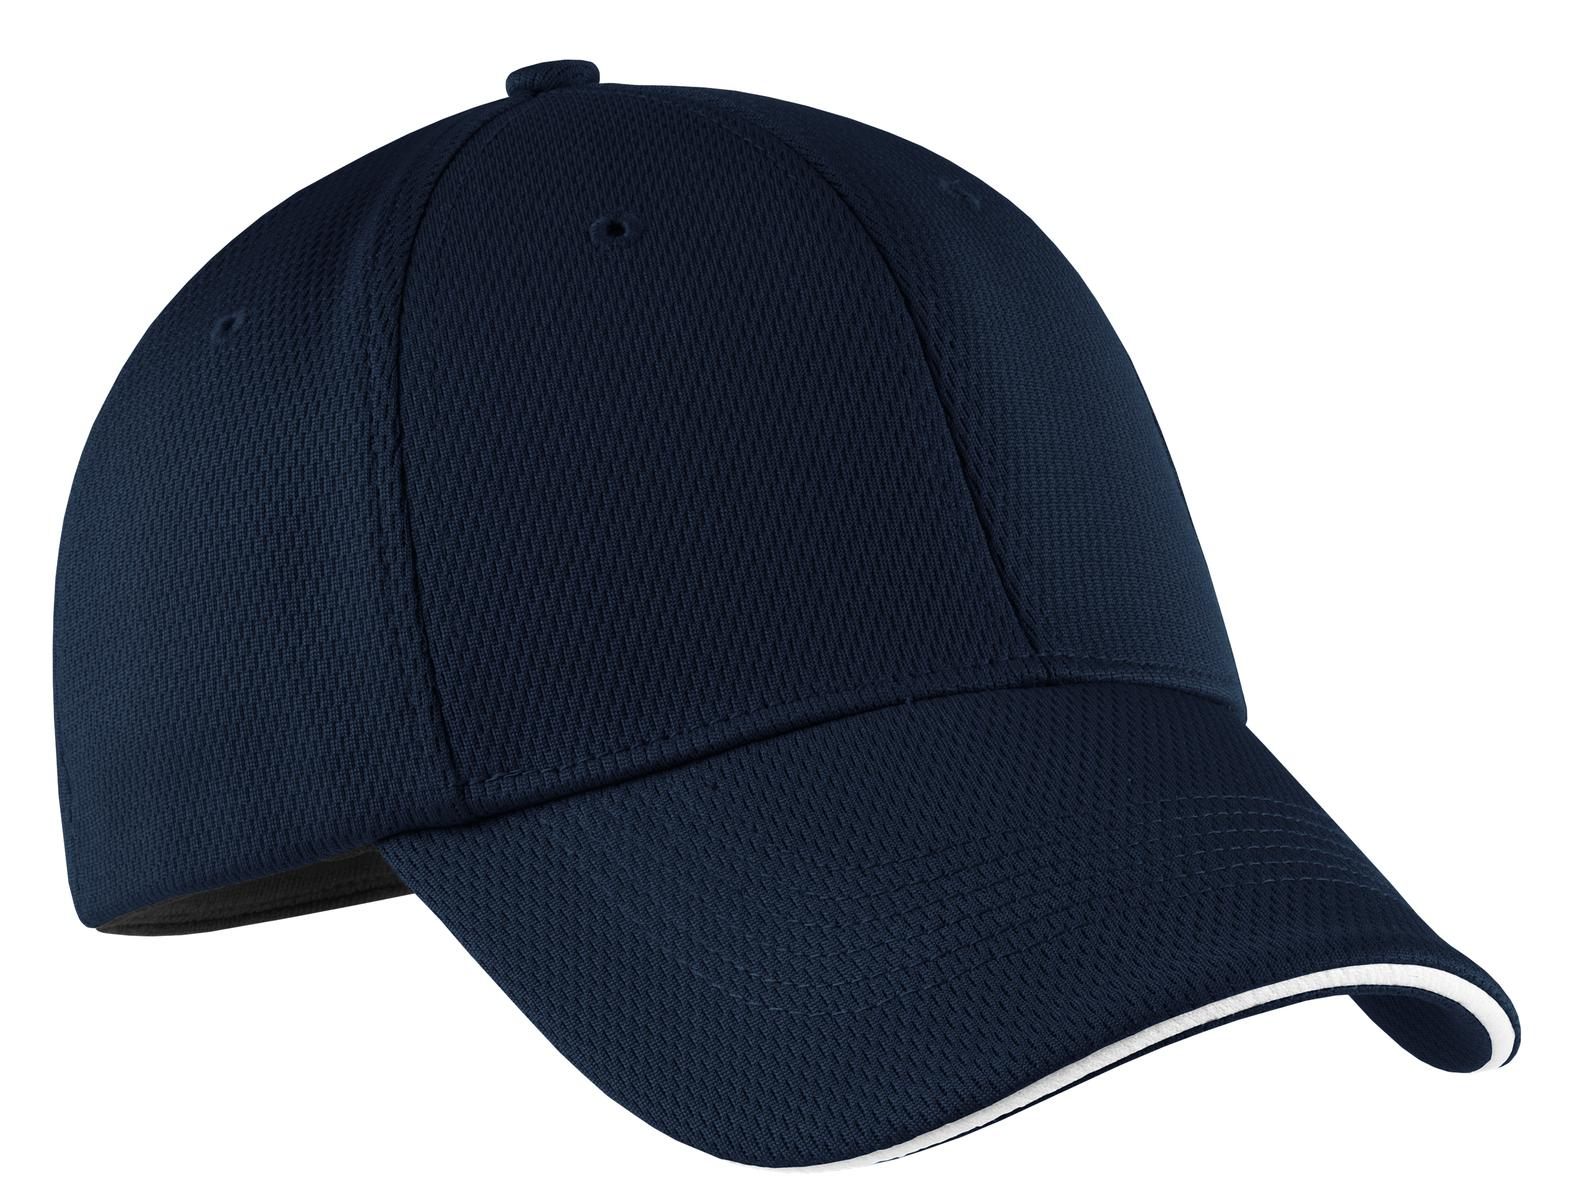 Pacific Blue Nike Dri-FIT Mesh Swoosh Flex Sandwich Cap